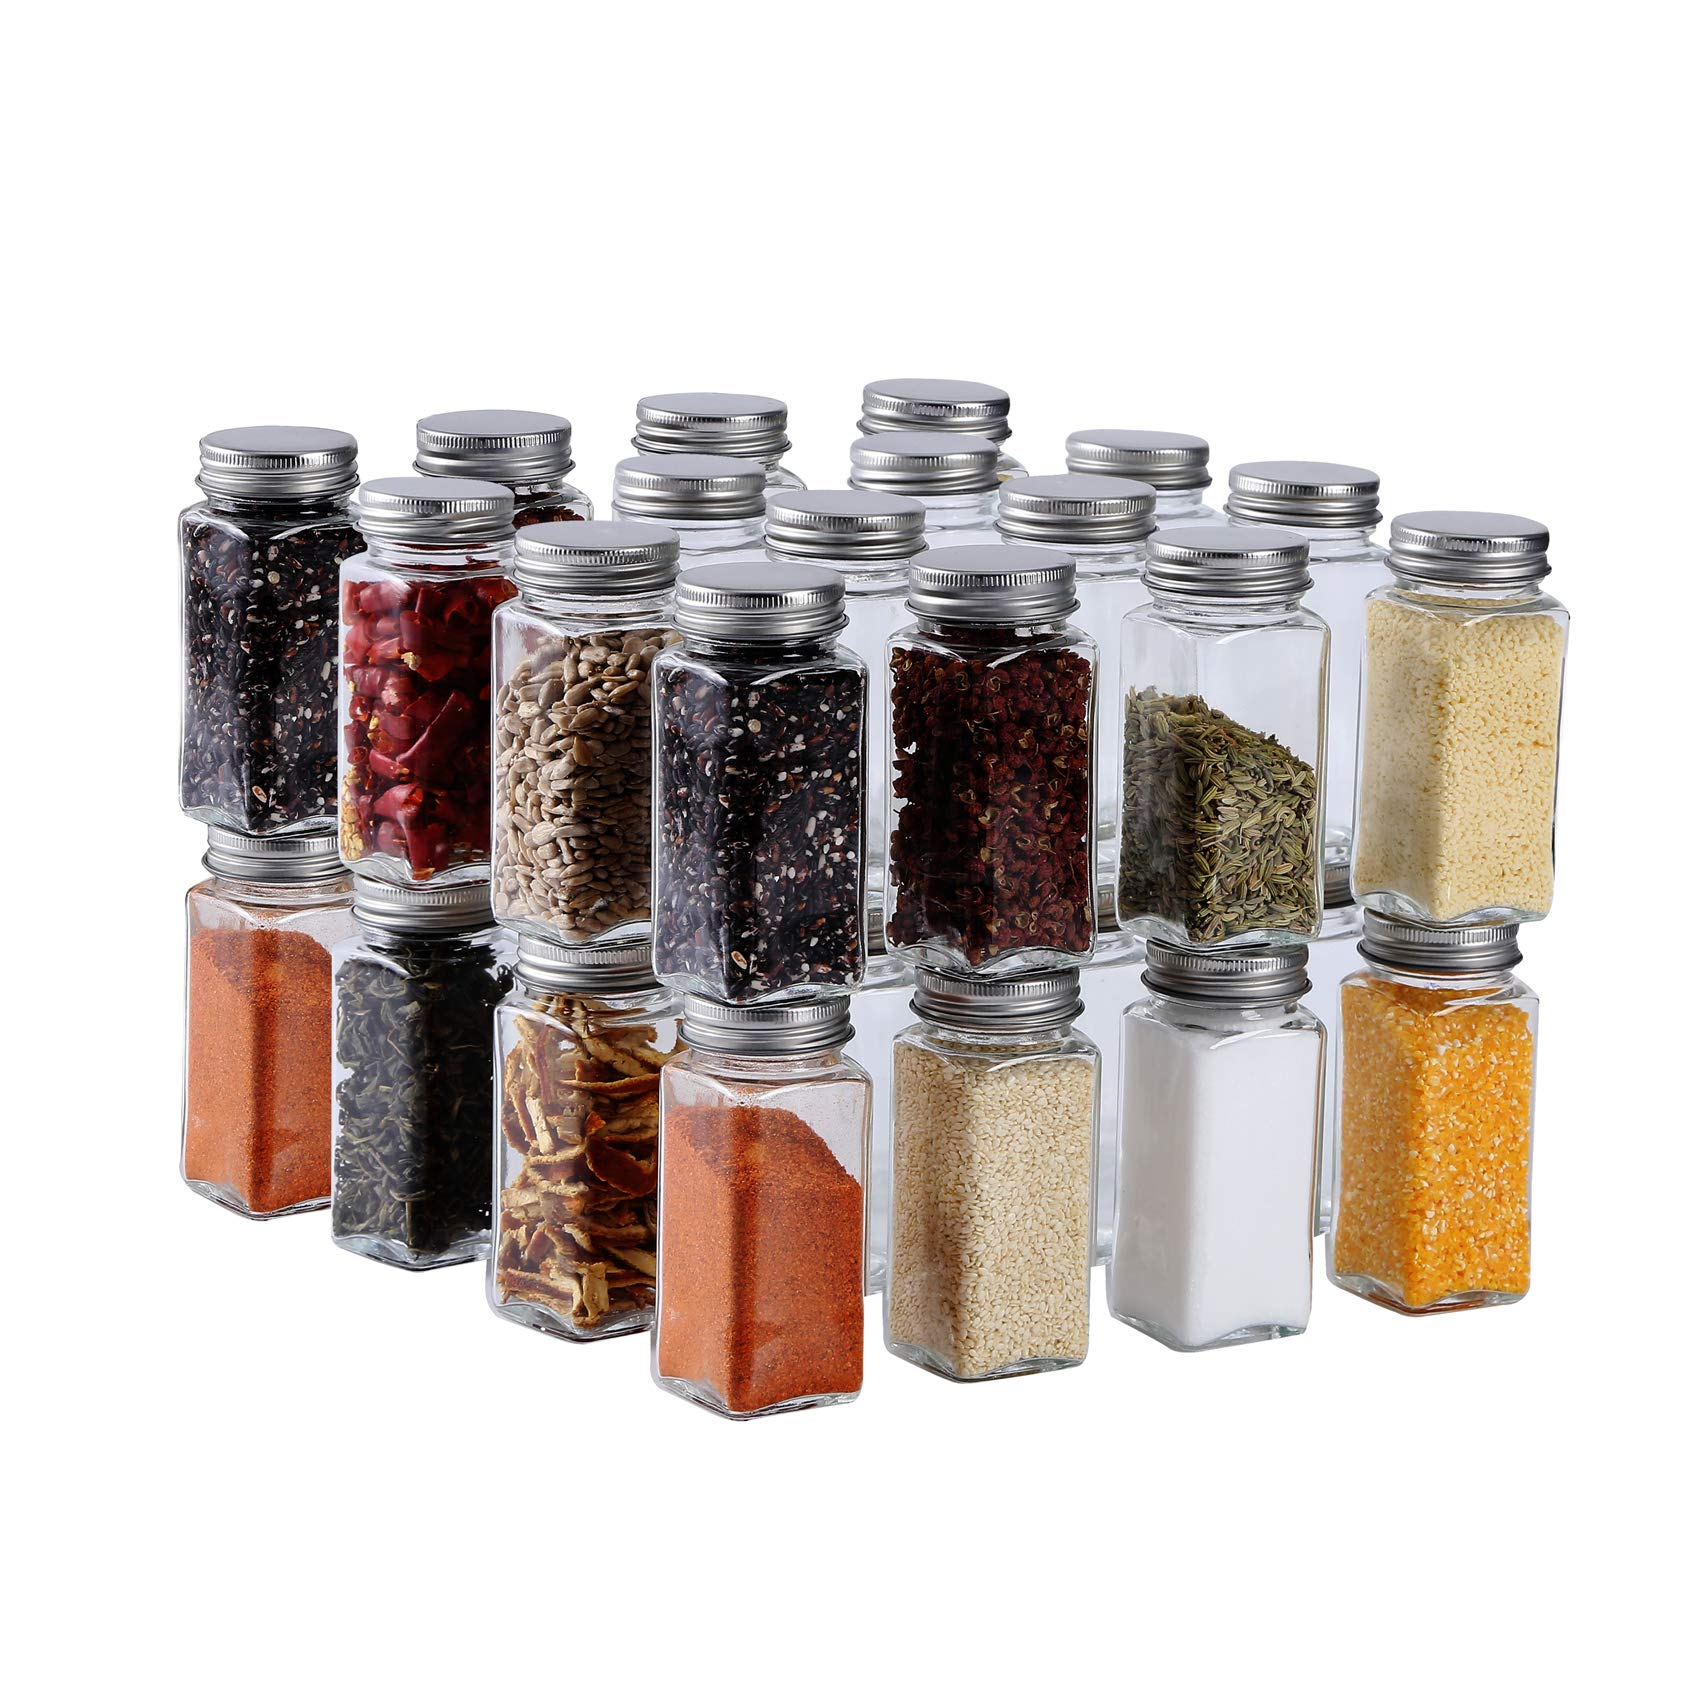 HAIBO 34 Pcs Small Glass Spice Jars(4 oz)Square Spice Containers Bottles Shaker